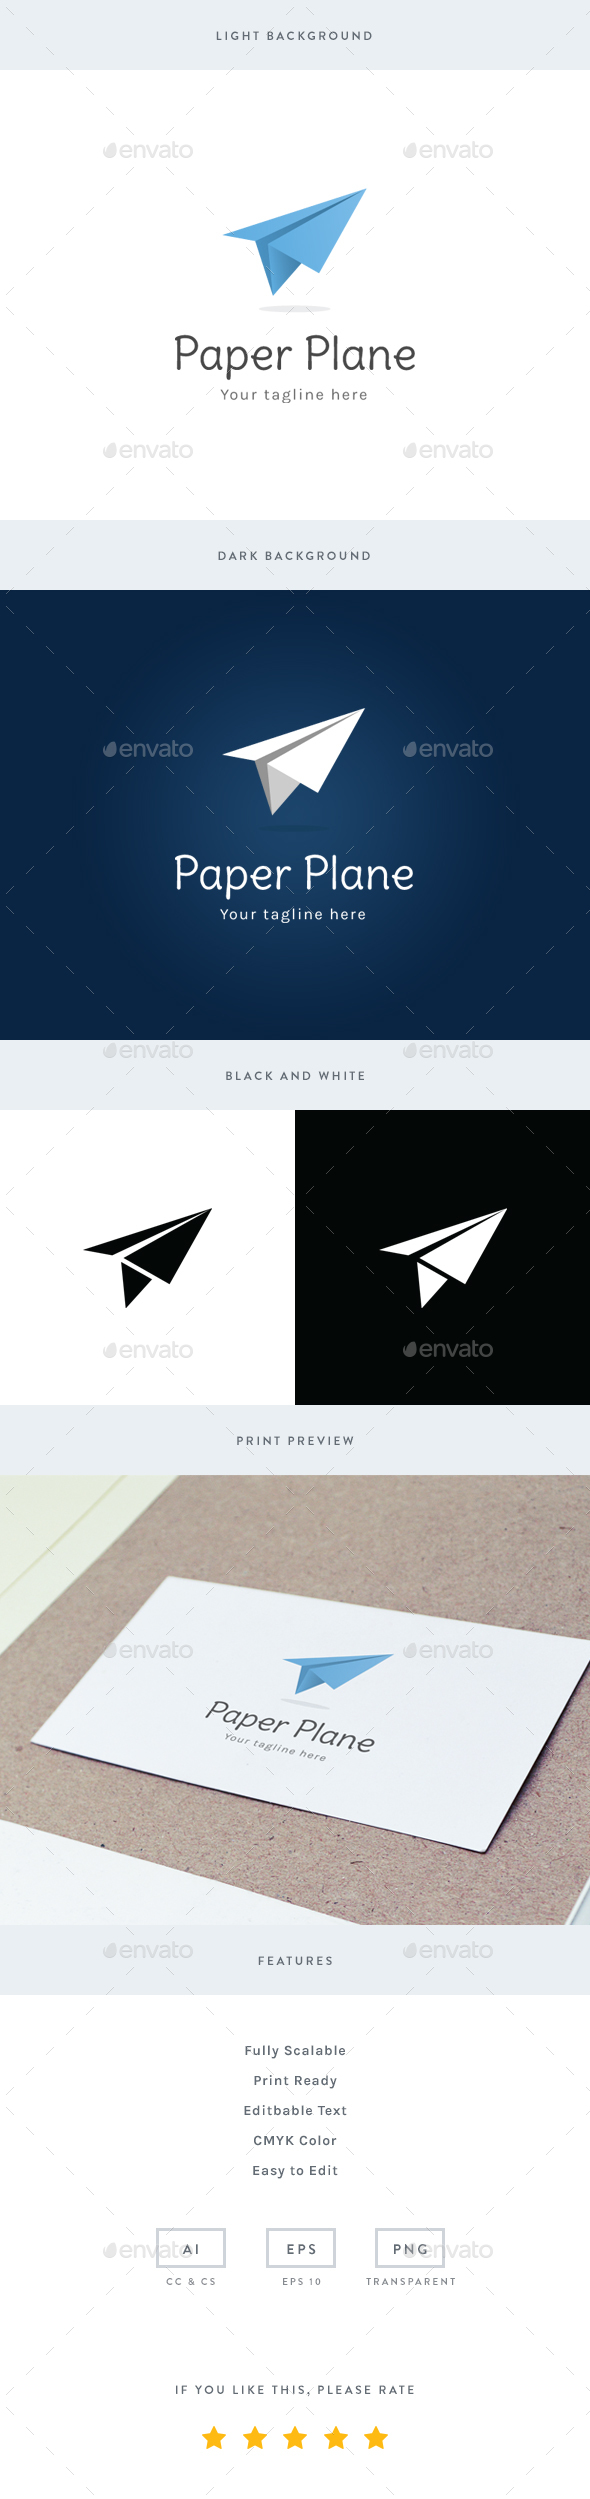 Paper Plane Logo - Objects Logo Templates